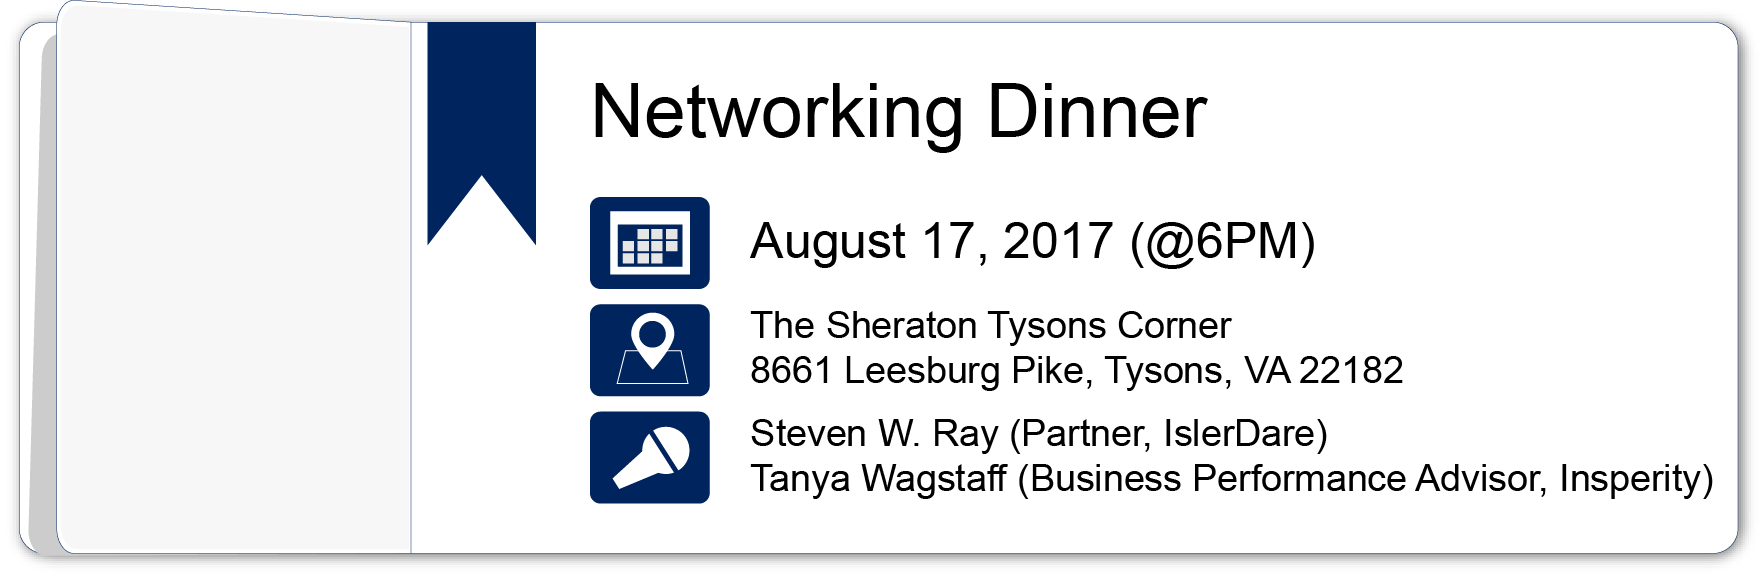 Networking Dinner – August 17, 2017